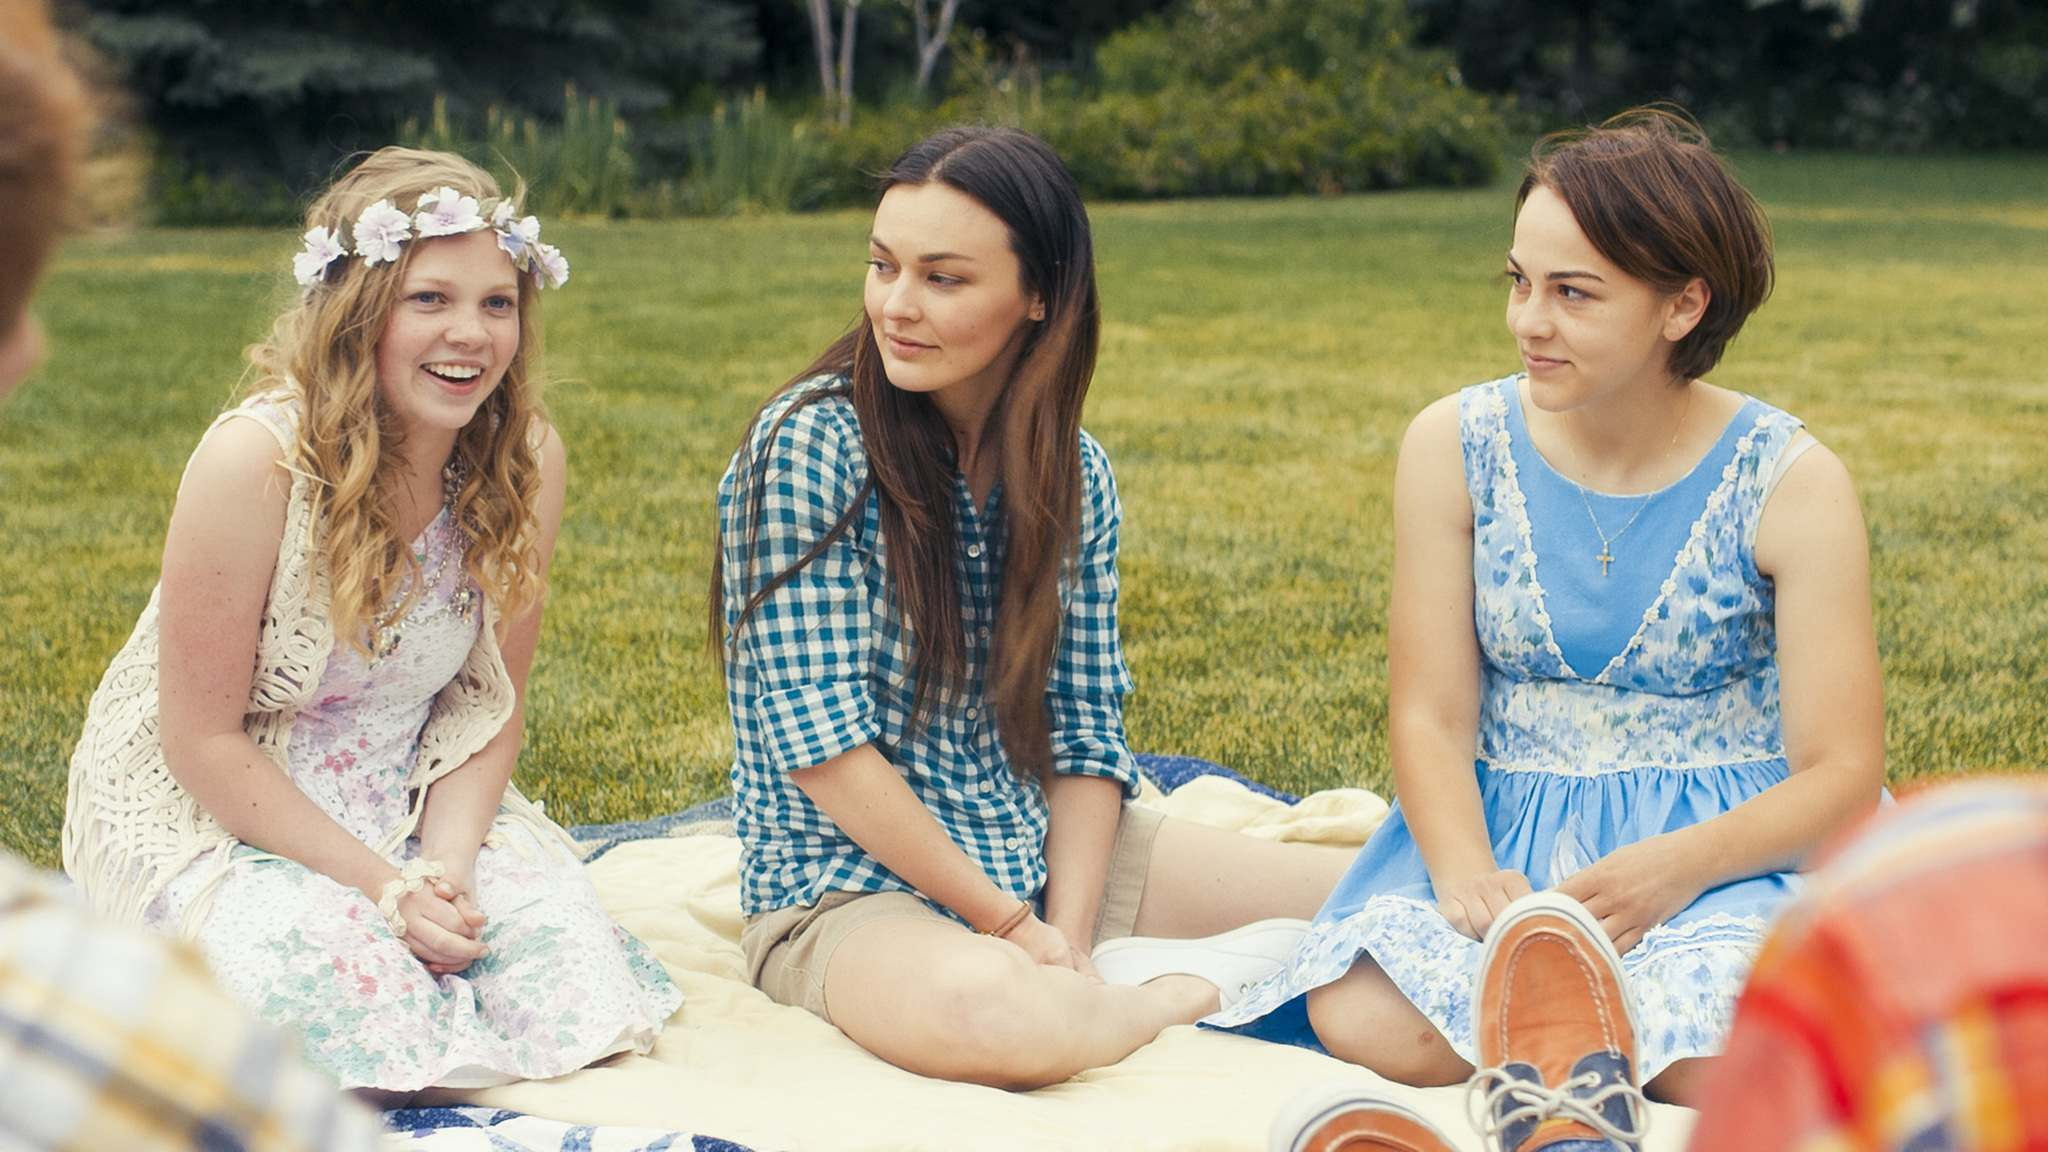 Pinnacle Peak Pictures</p><p>Elise Jones (left) as Amy, Melanie Stone as Meg and Allie Jennings as Beth in the latest Little Women adaptation.</p></p>